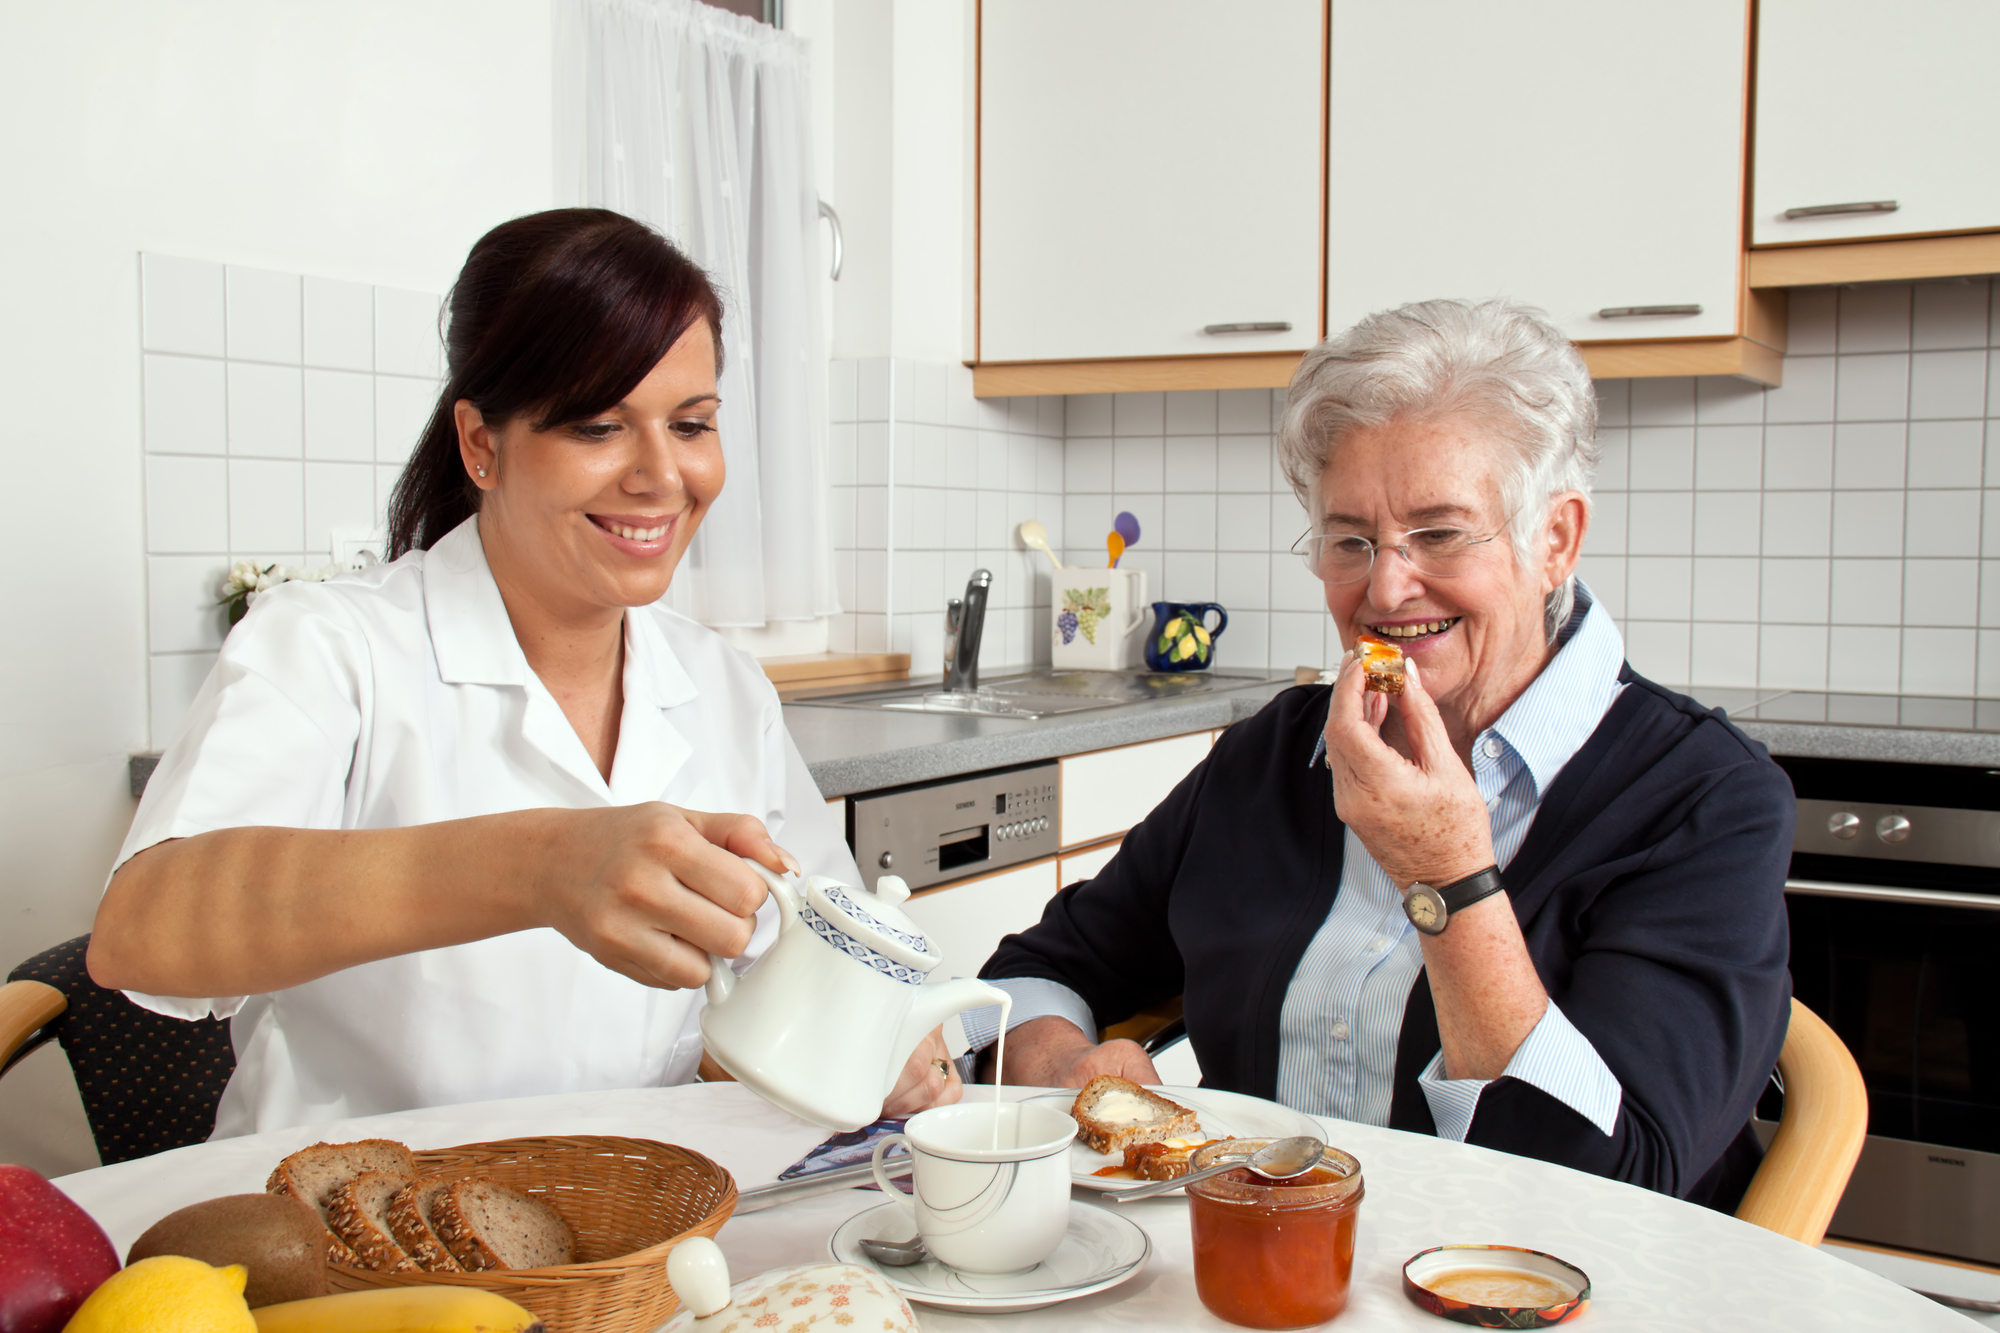 Two individuals sitting at a table in a home kitchen sharing breakfast; the younger person on the left pours cream into a teacup for a senior individual on the right, both smiling.